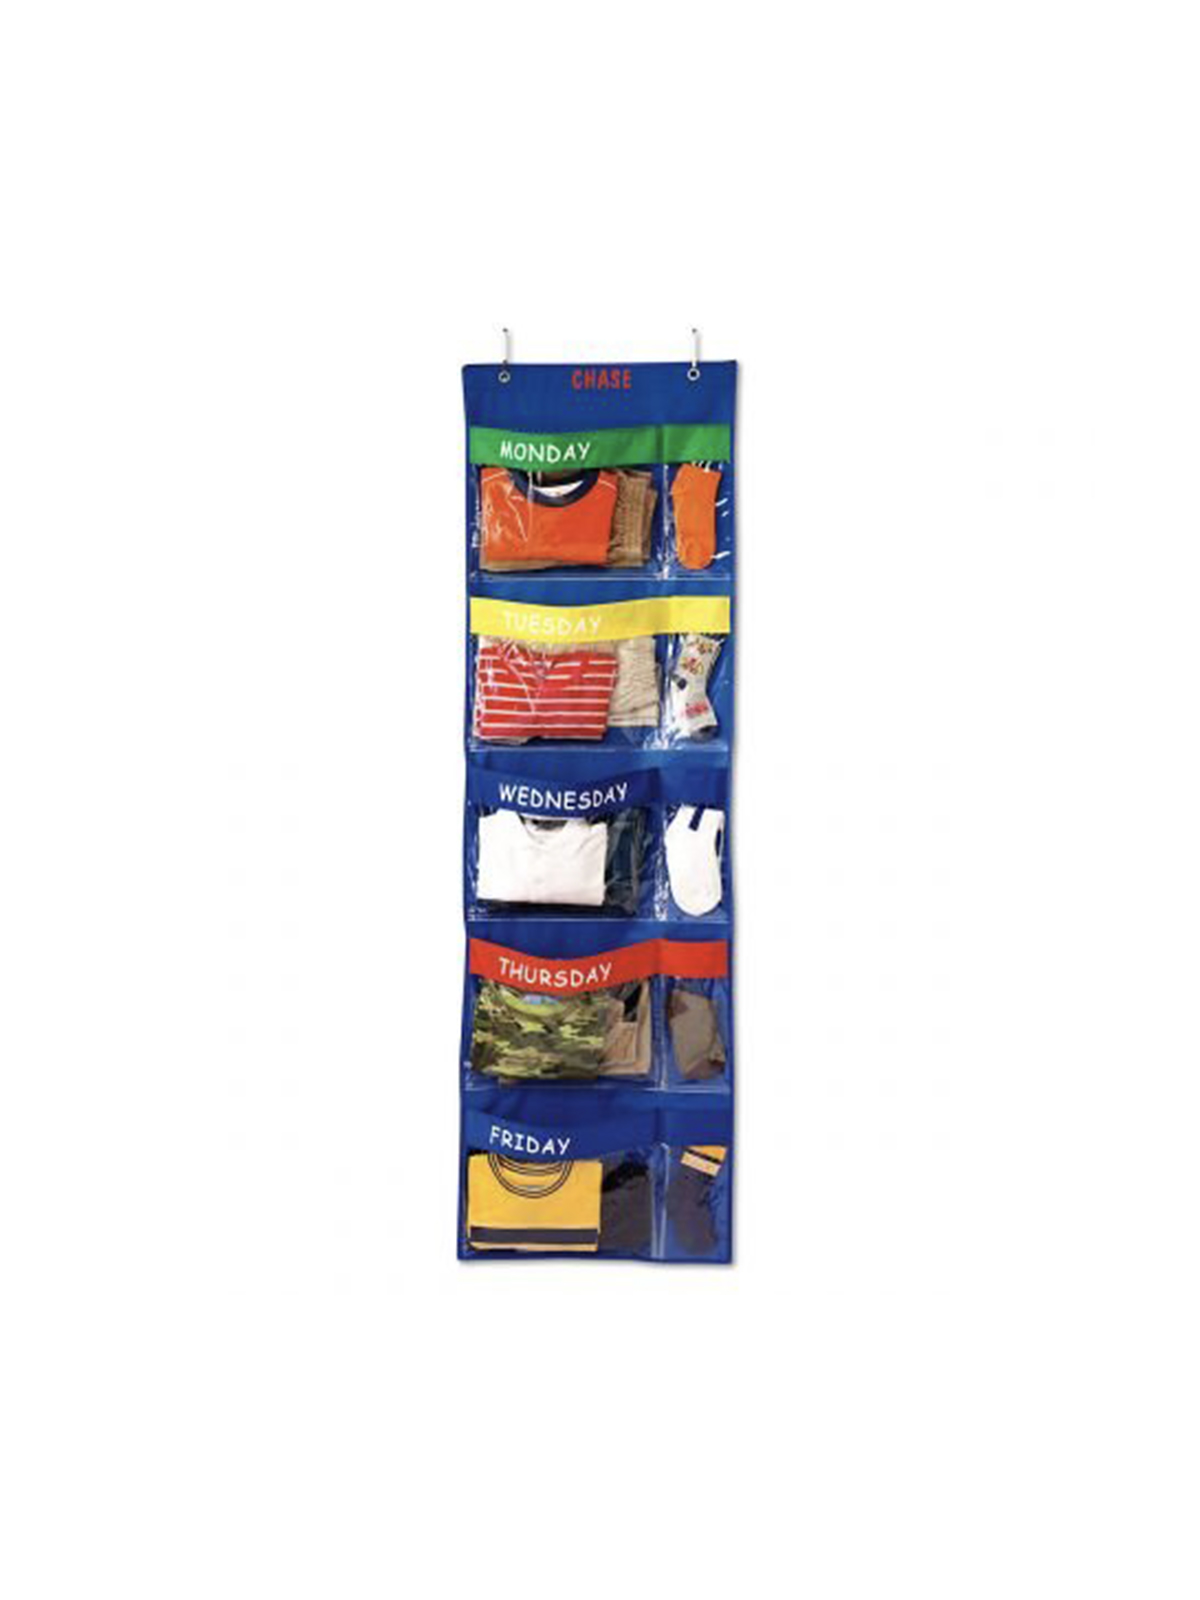 Days of the Week Closet Organizer for Kids